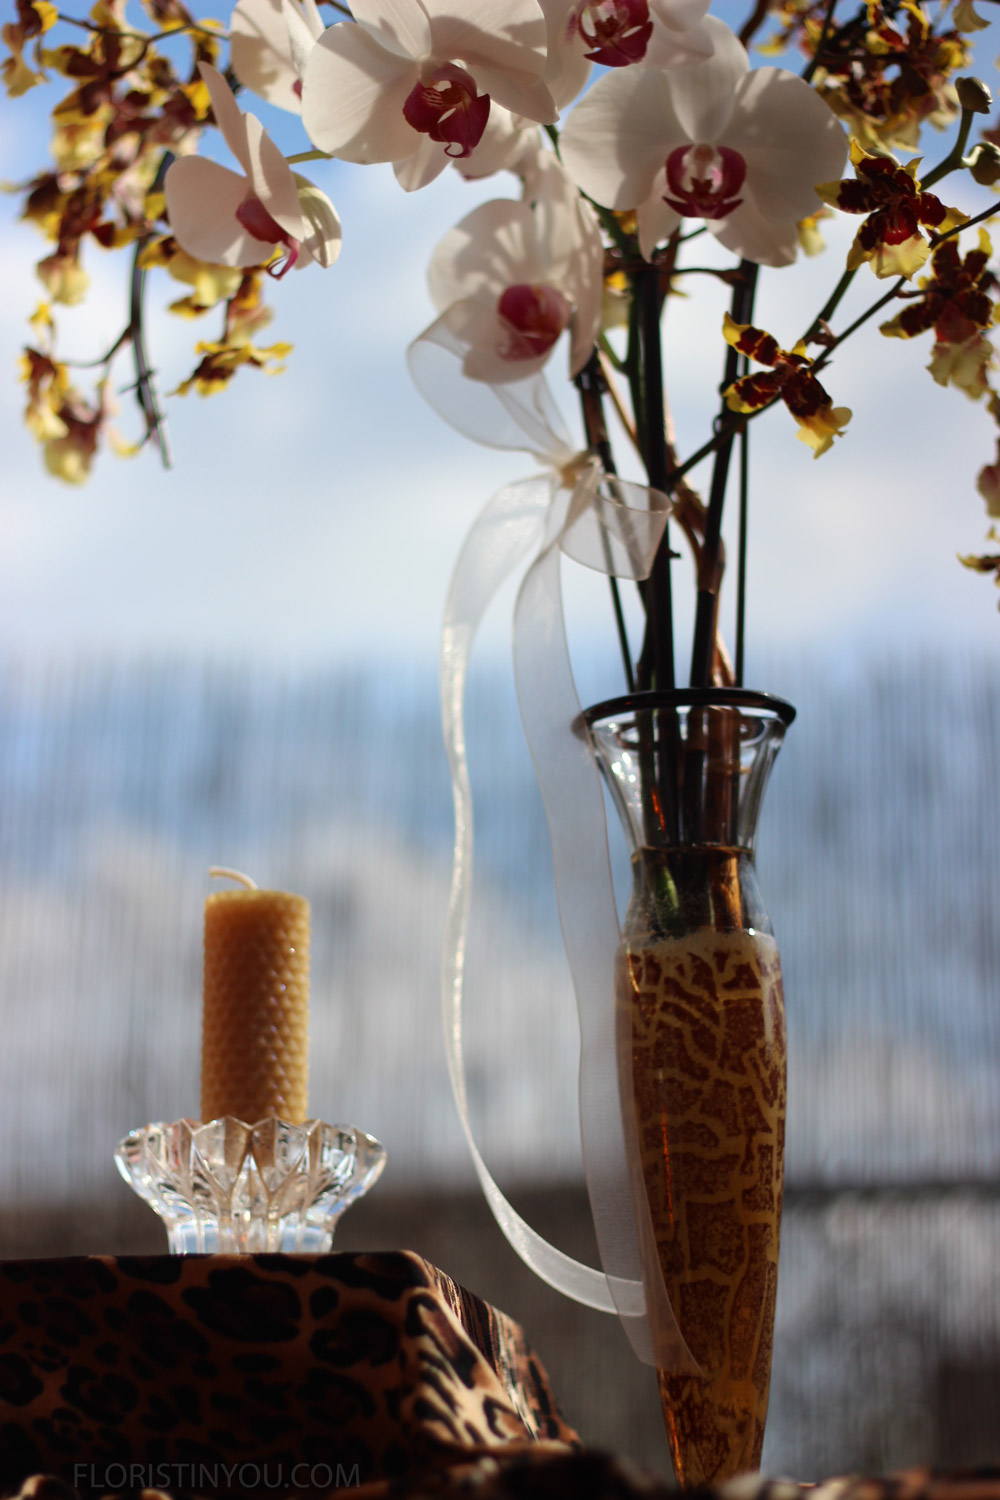 Tie a sheer ribbon on one of the supports or orchid stems.  Cut the ends at a 45 degree angle with sharp fabric scissors.